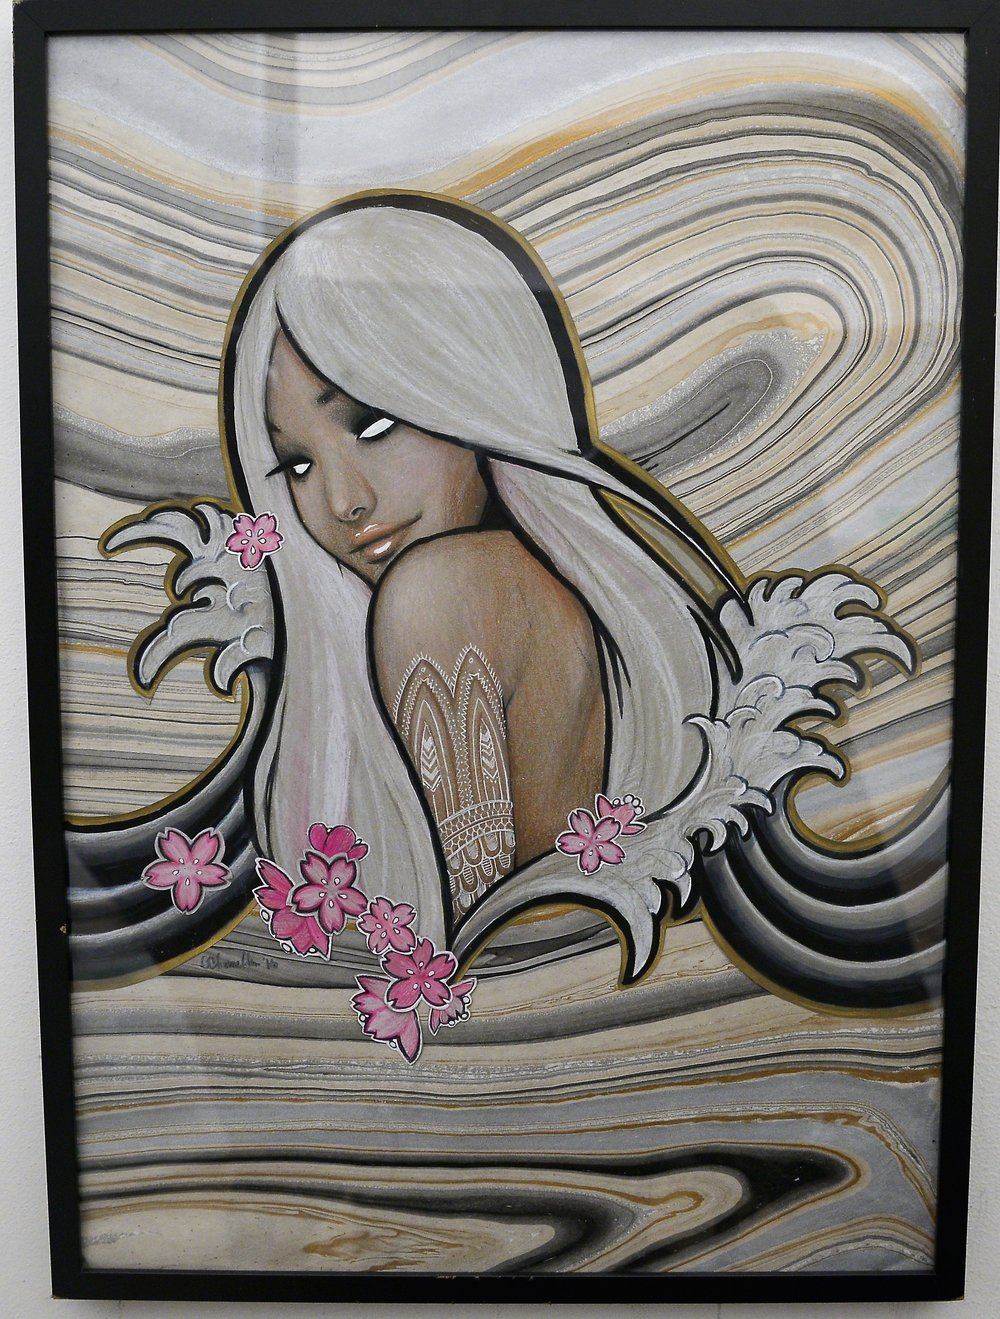 So Wavy by Coco - $250 - Pencil and Ink - W(21')XH(28') Framed.JPG